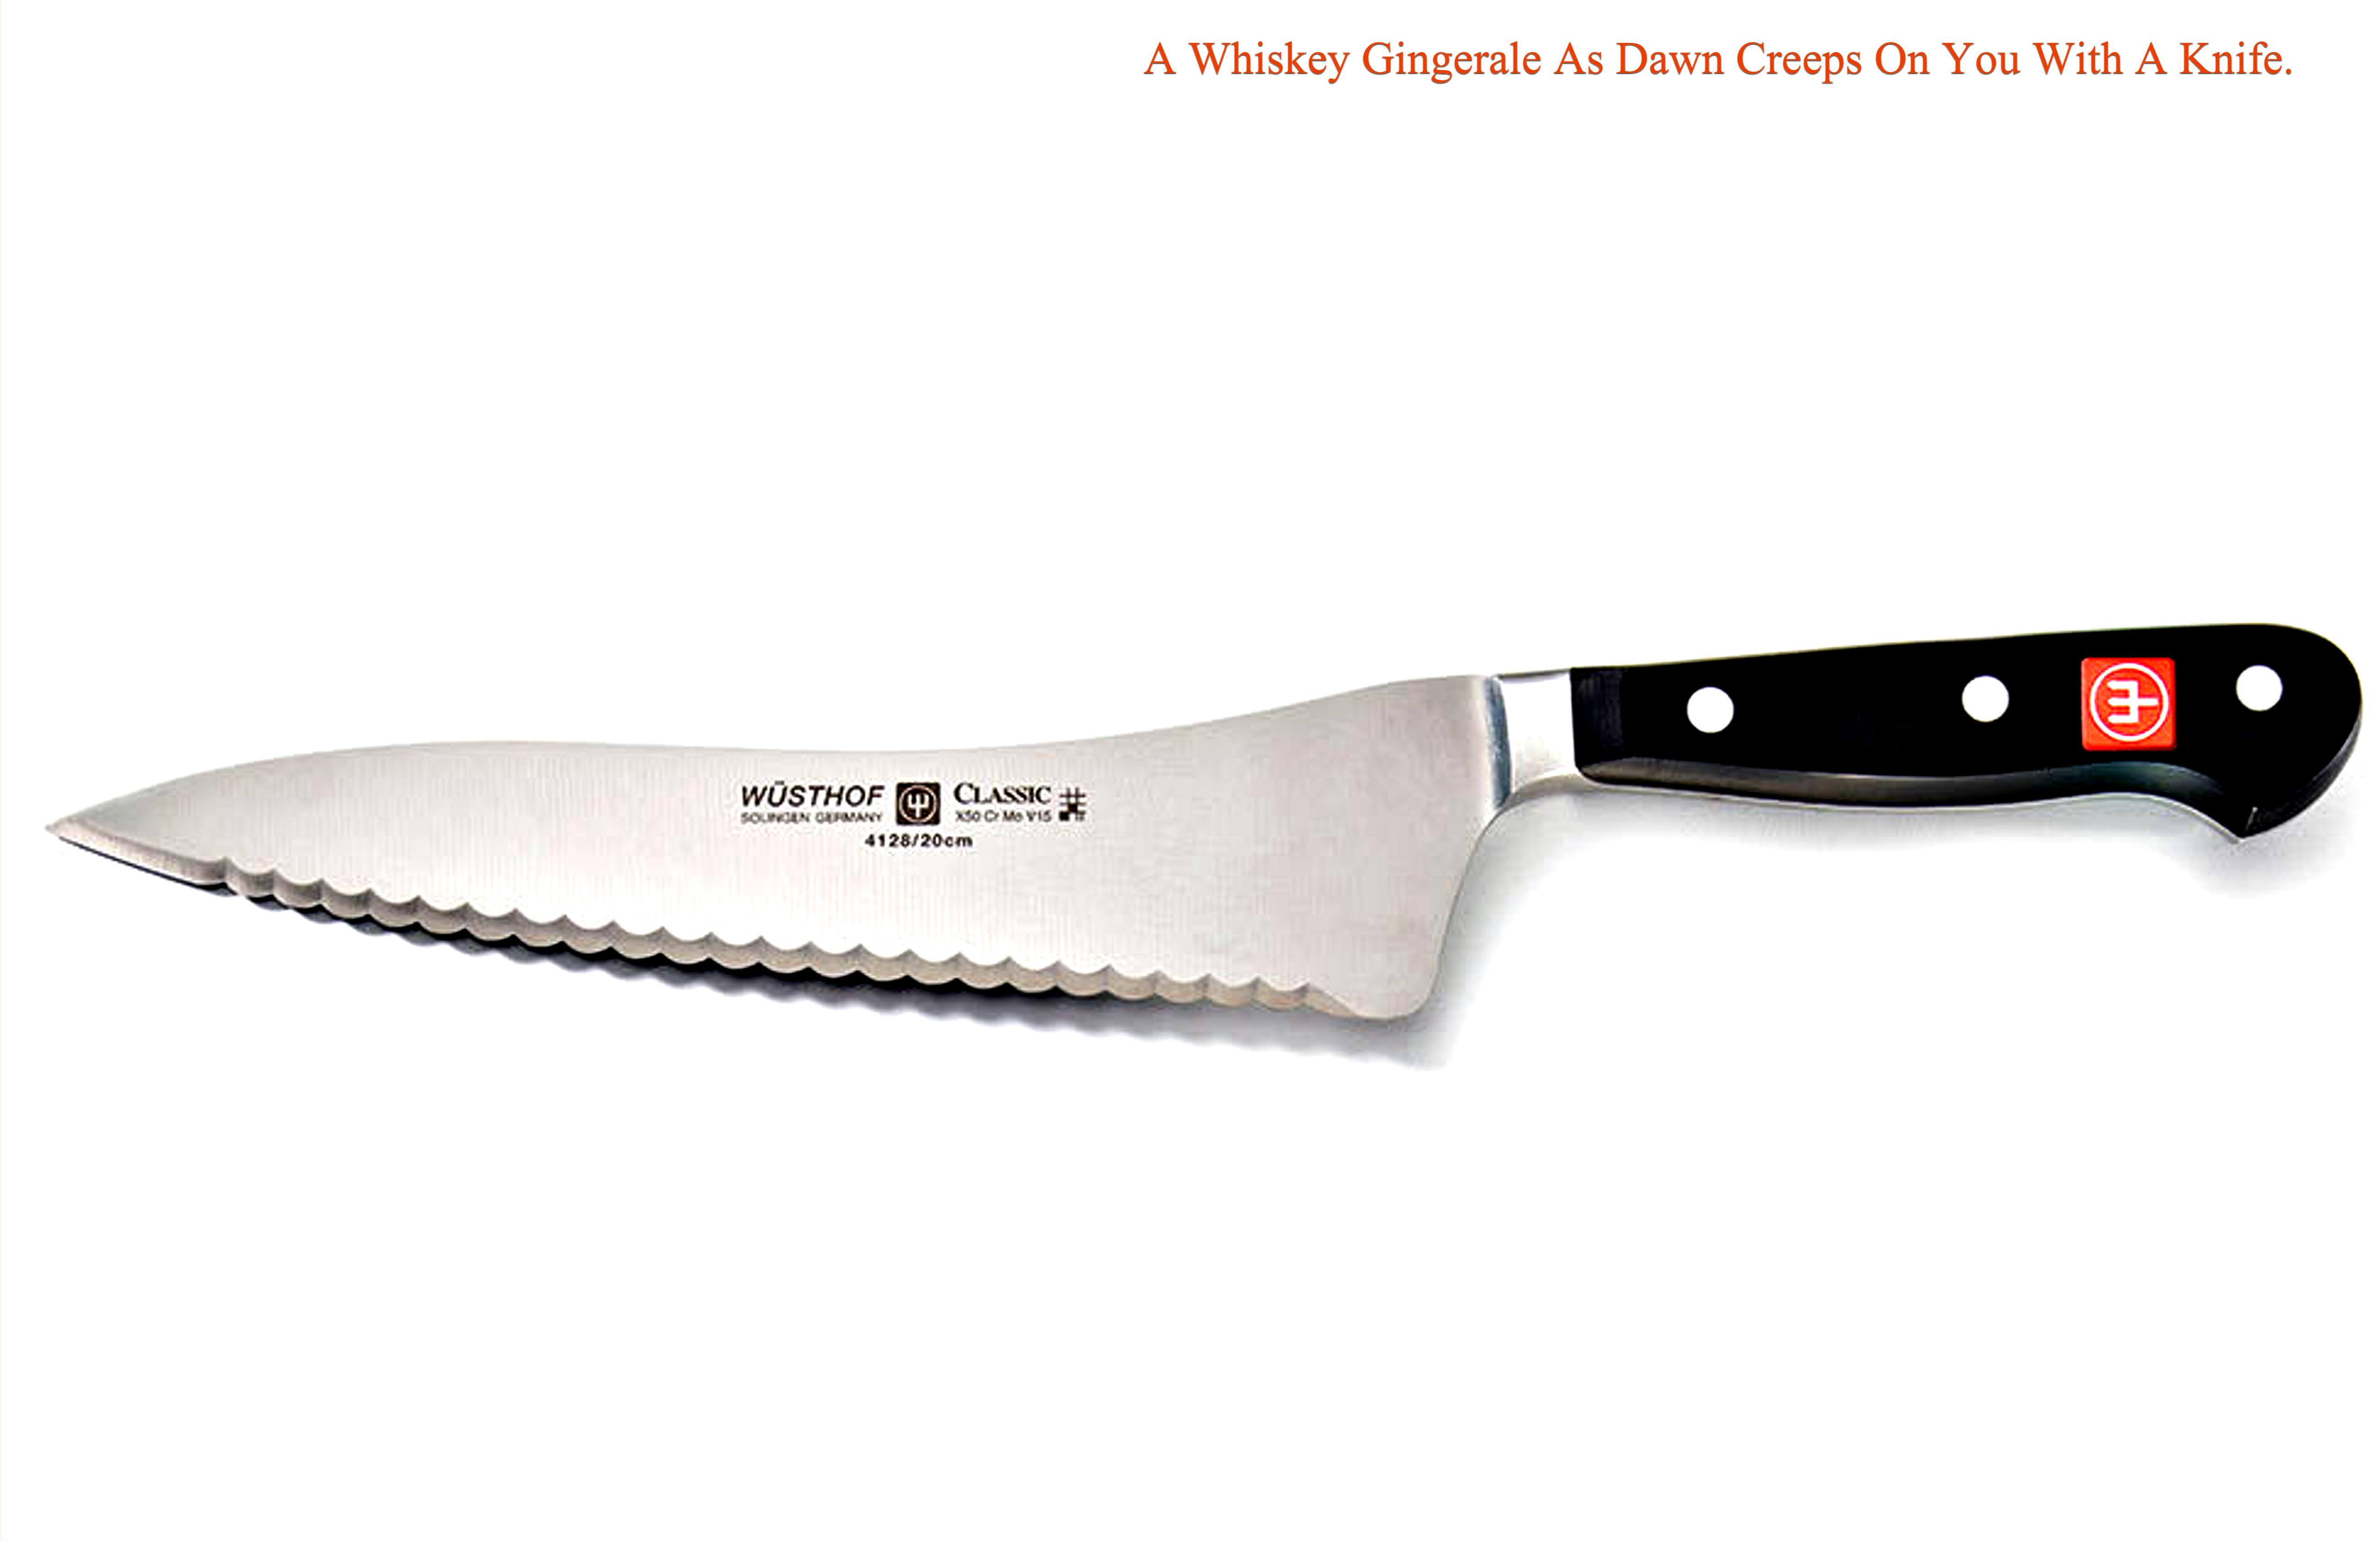 A Whiskey Gingerale As Dawn Creeps On You With A Knife cover image